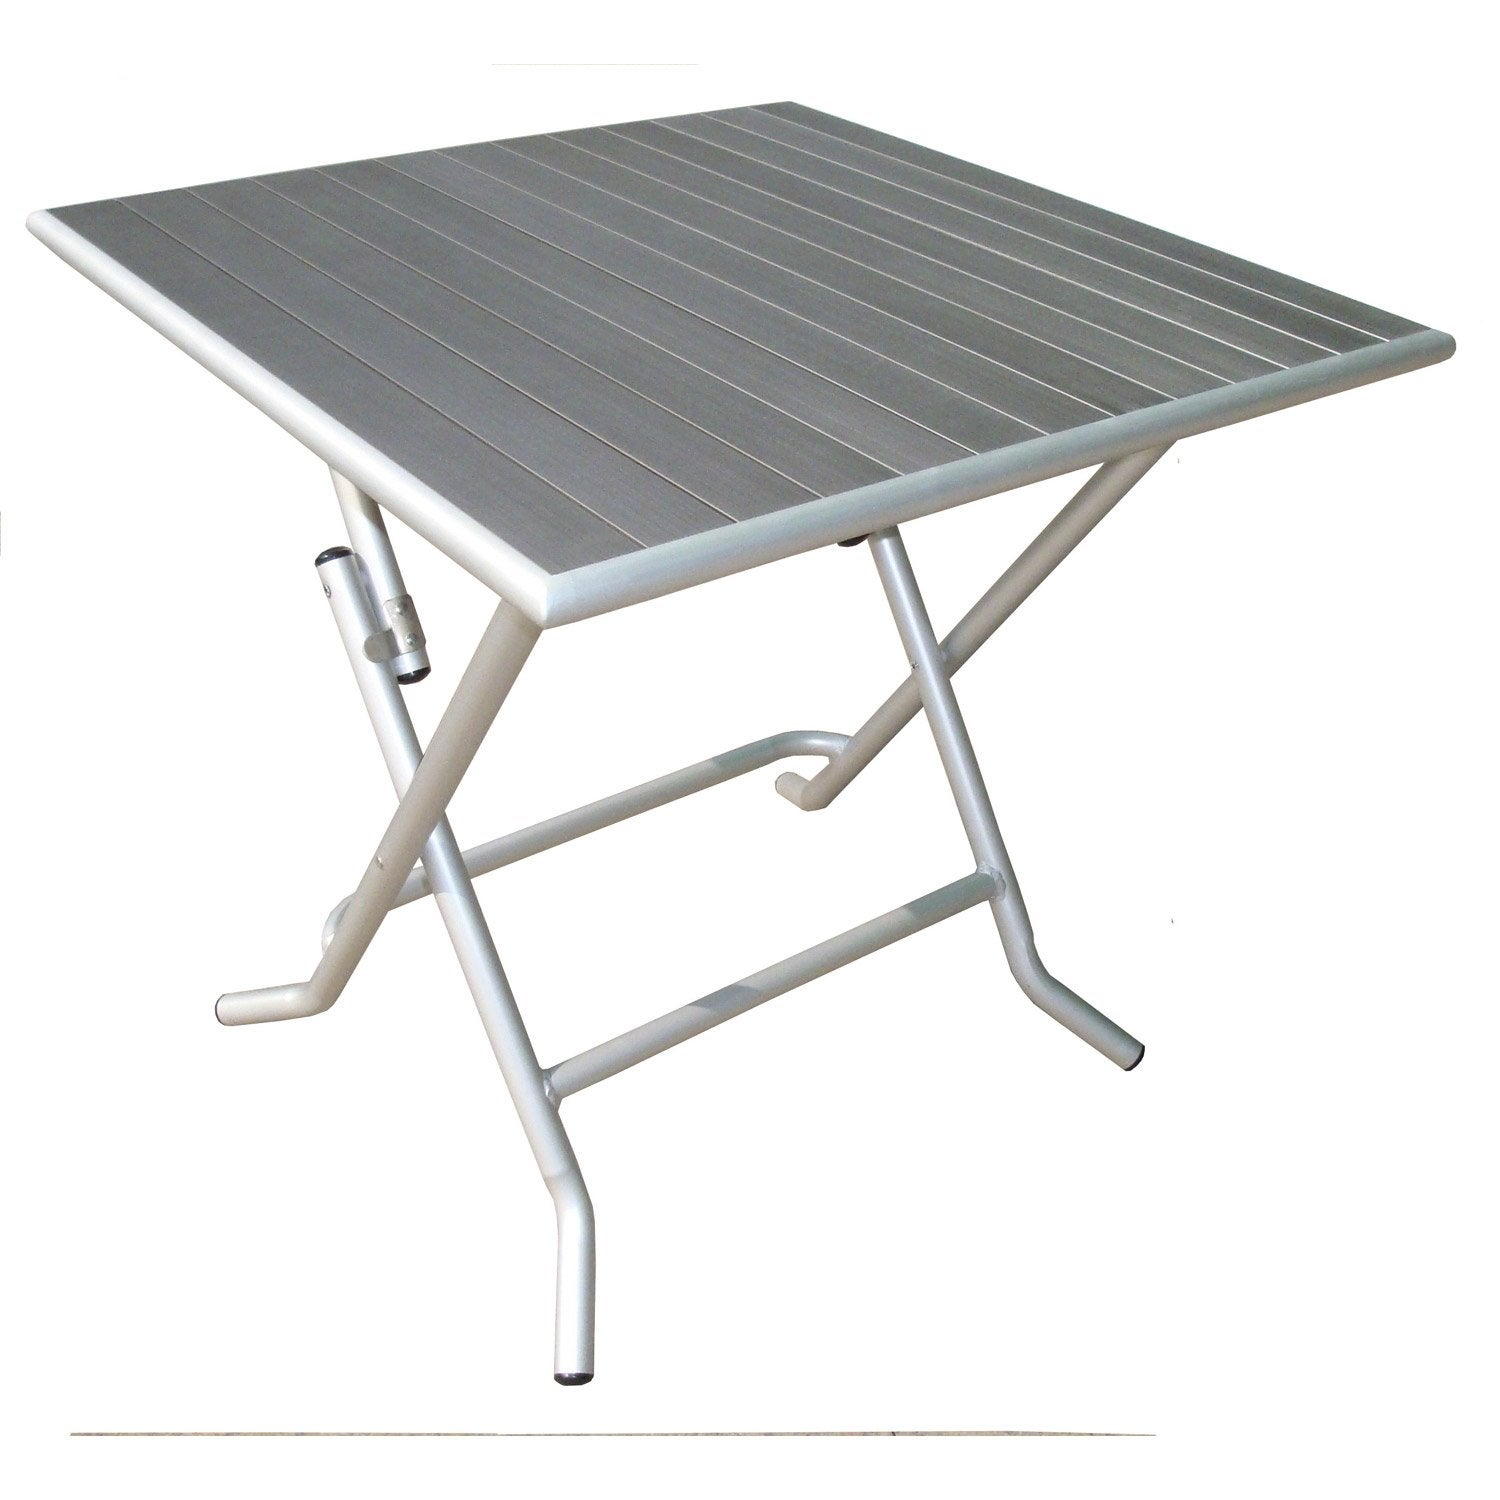 Table de jardin m tal leroy merlin - Leroy merlin table jardin ...